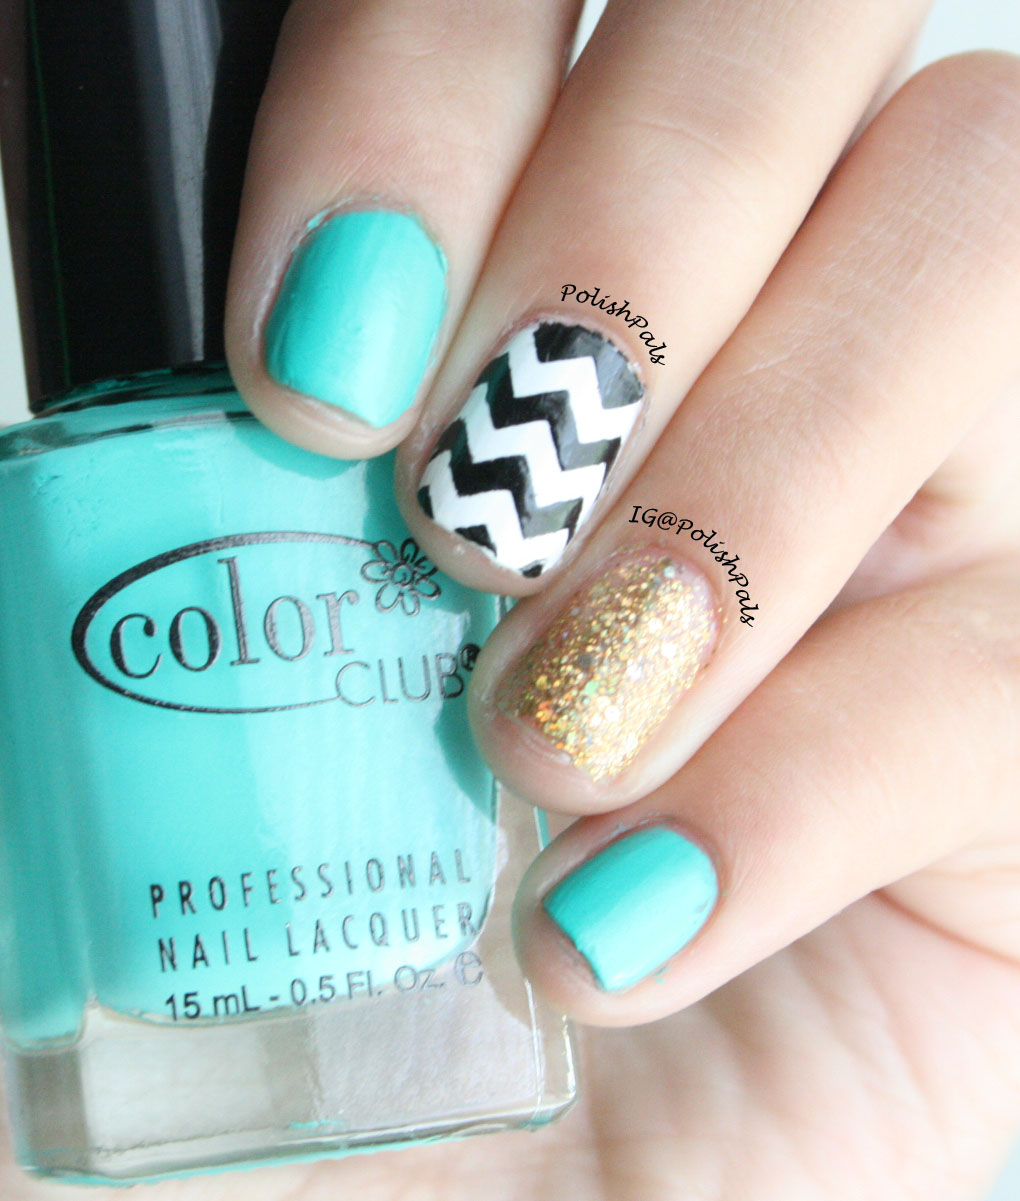 polish pals turquoise gold and chevron nails